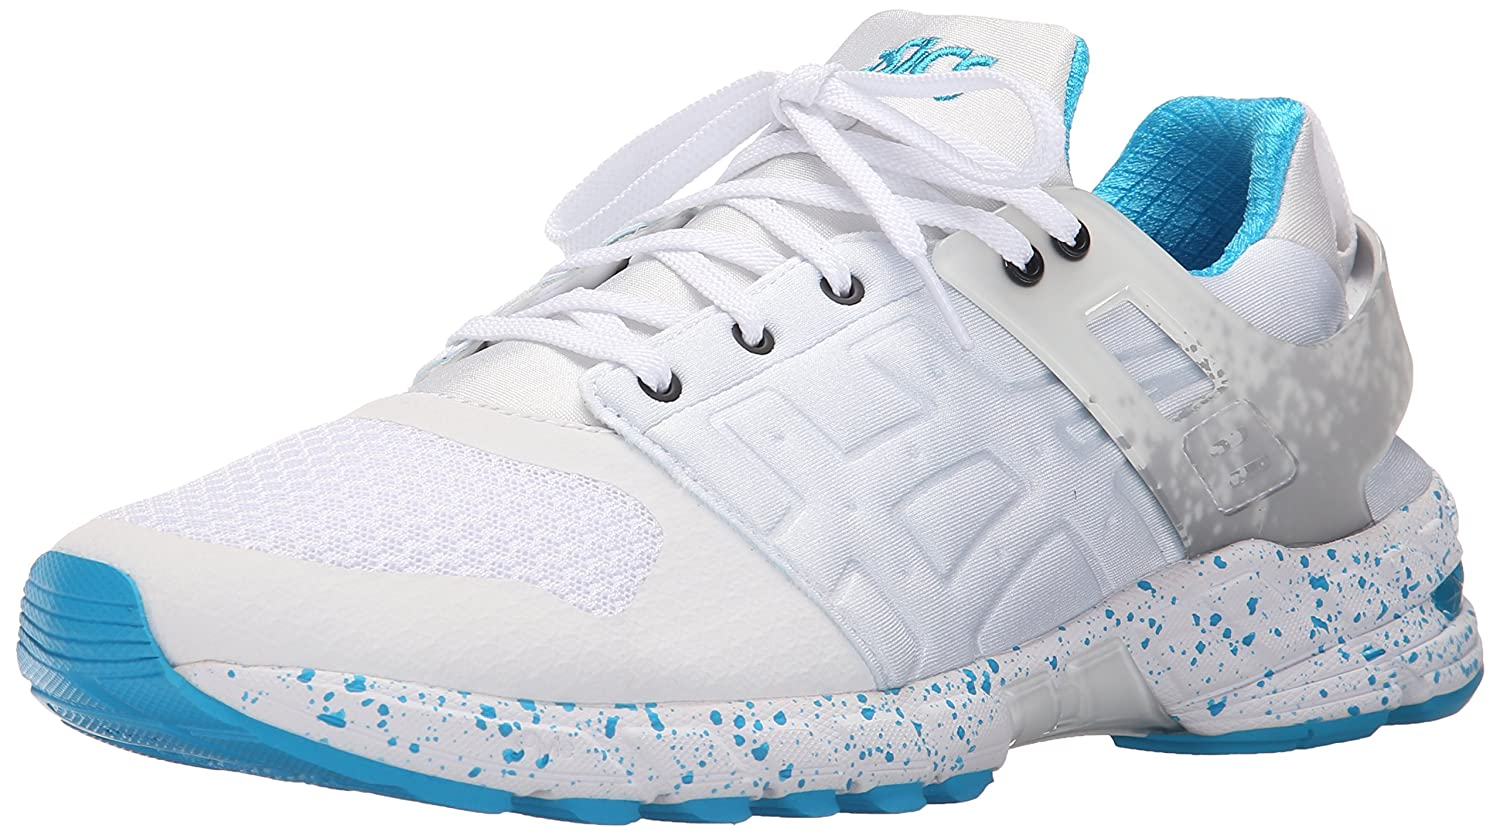 ASICS GT DS Retro Running Shoe B00ZQ4O7I6 6 M US|White/Atomic Blue